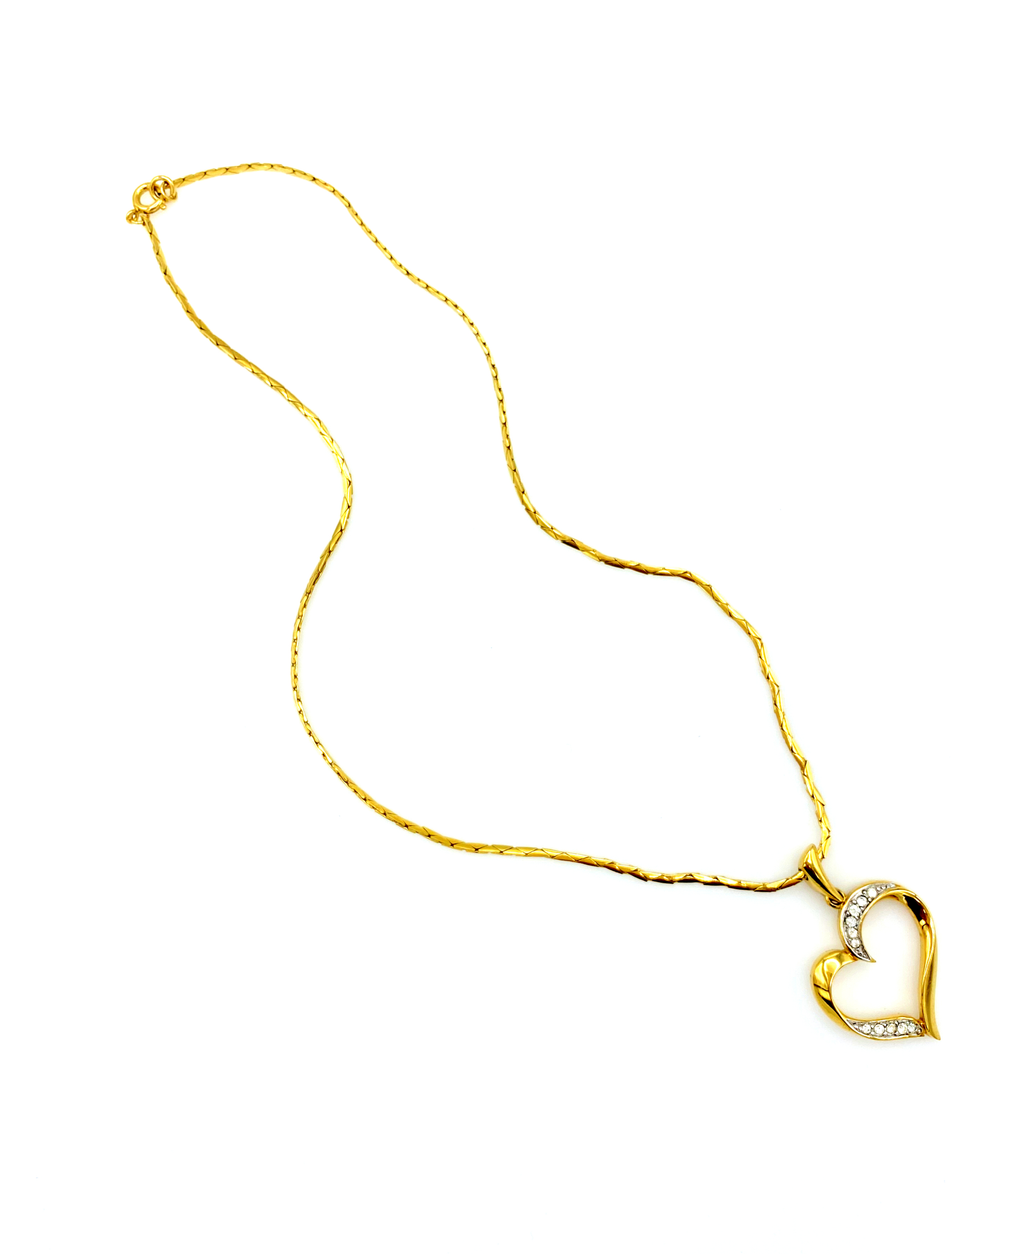 Crown Trifari Open Heart Gold Vintage Pendant-Sustainable Fashion with Vintage Style-Trending Designer Fashion-24 Wishes